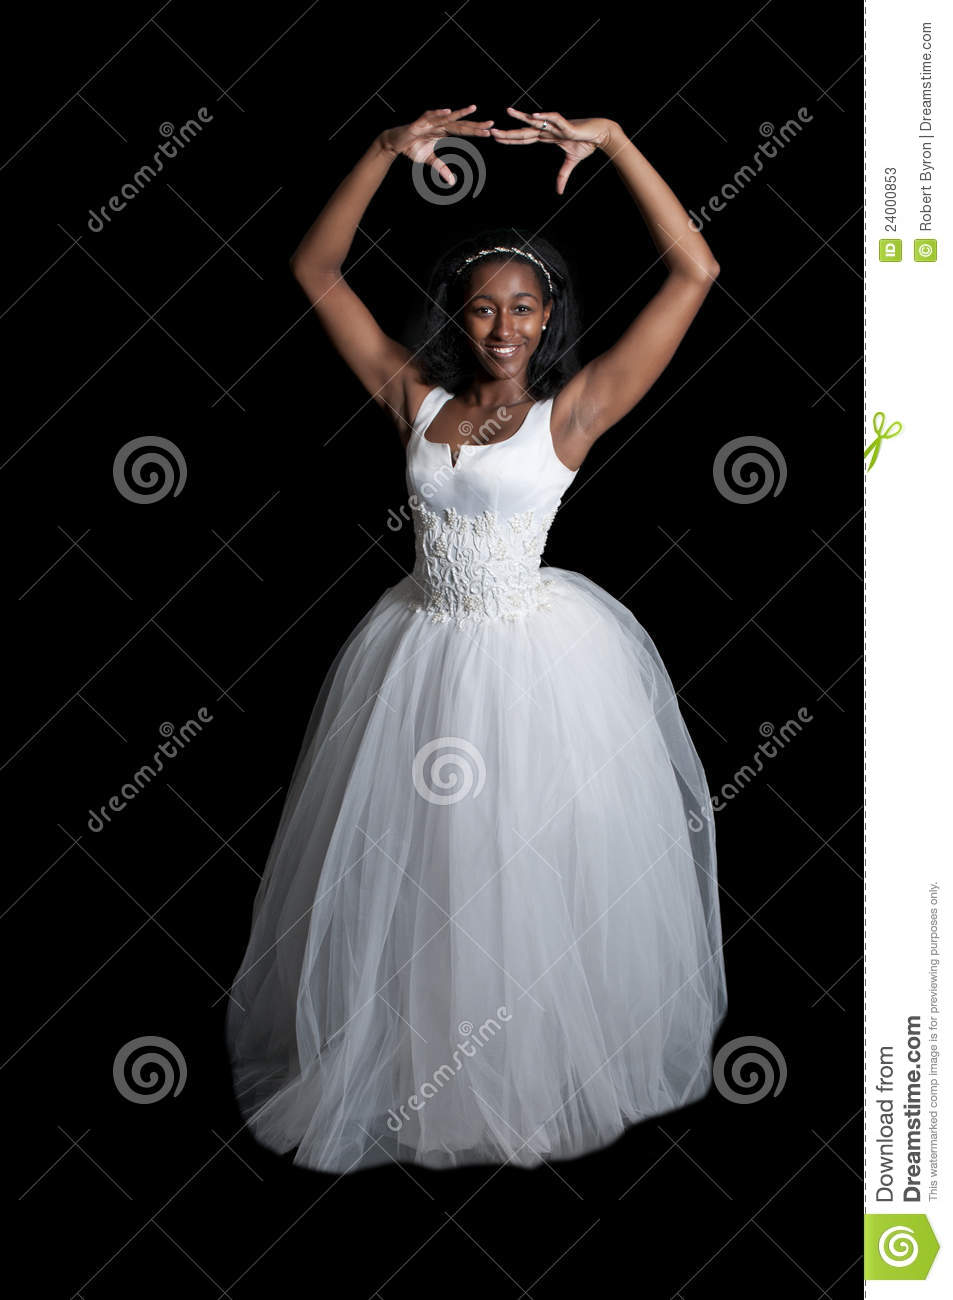 Black Woman In Wedding Dress Stock Image - Image of bridal, ethnic ...